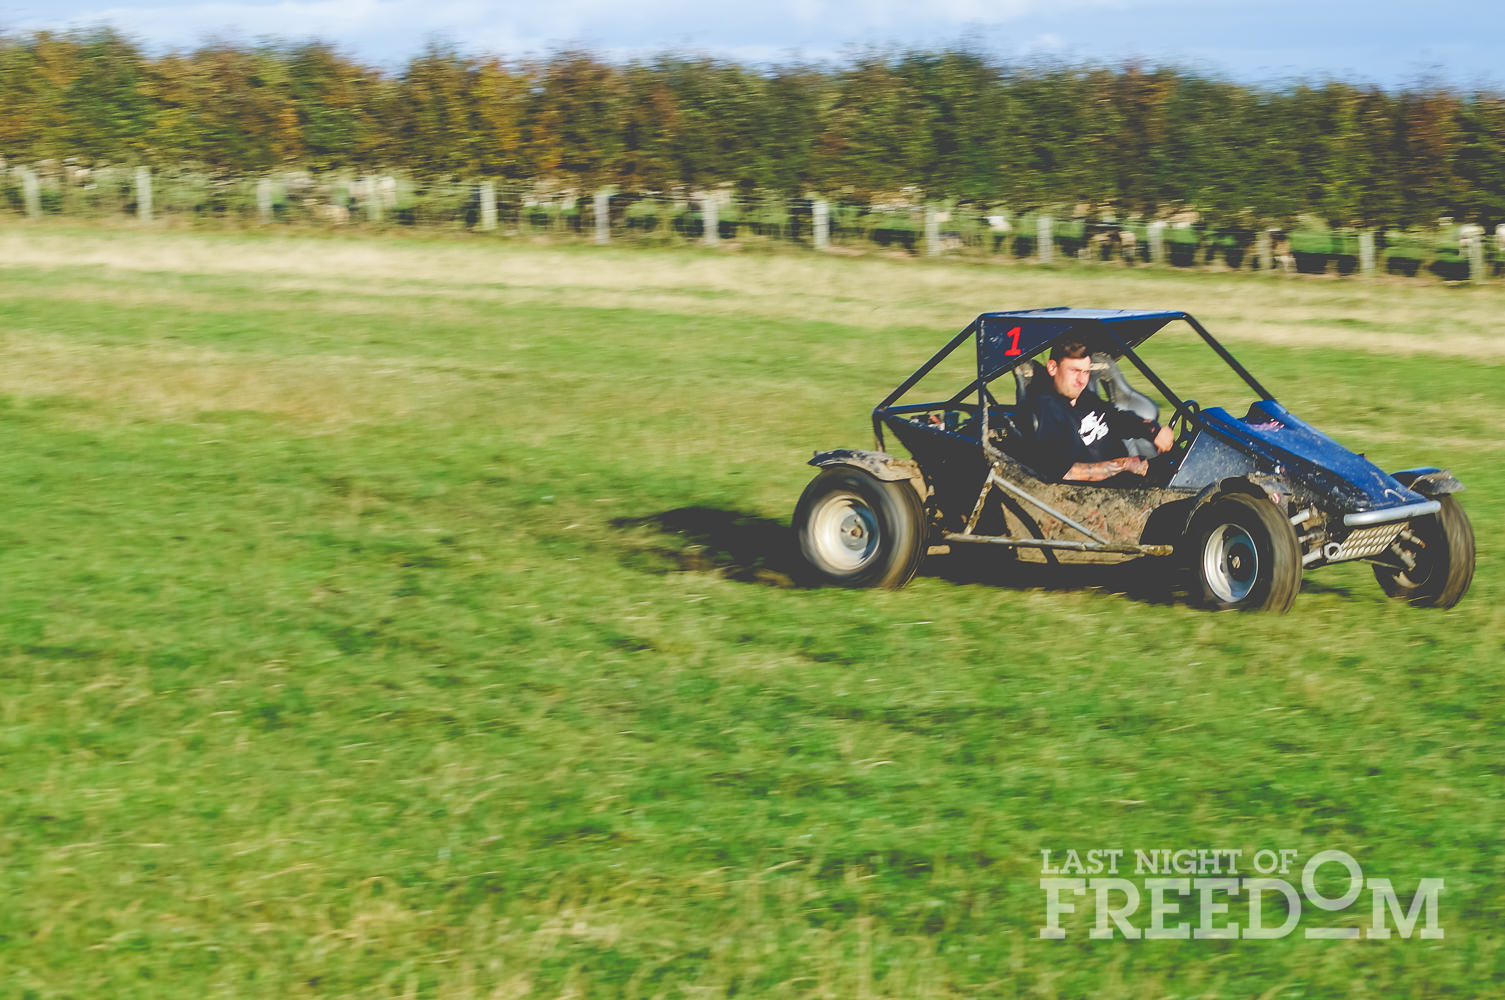 A rage buggy in a field